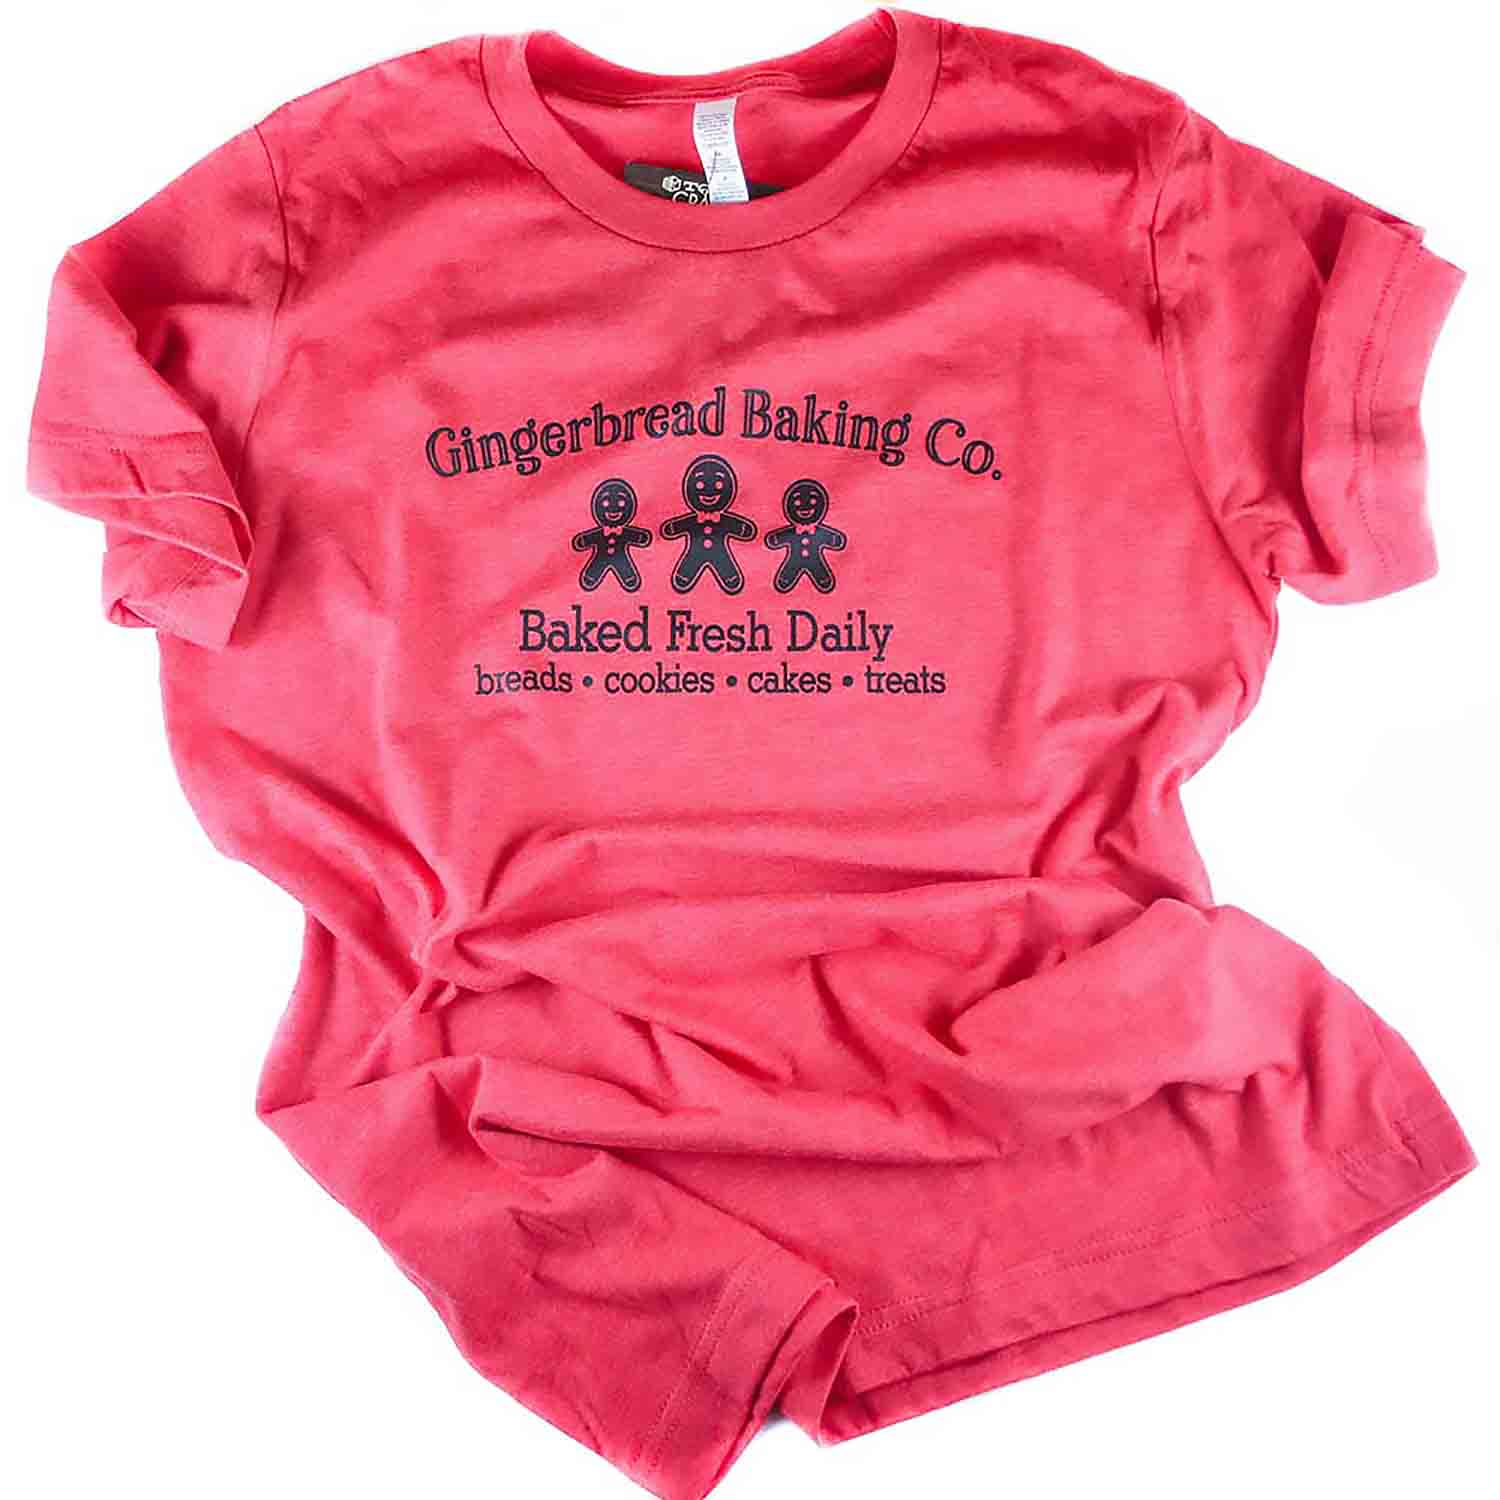 Red Gingerbread Baking Co. T-Shirt - Large